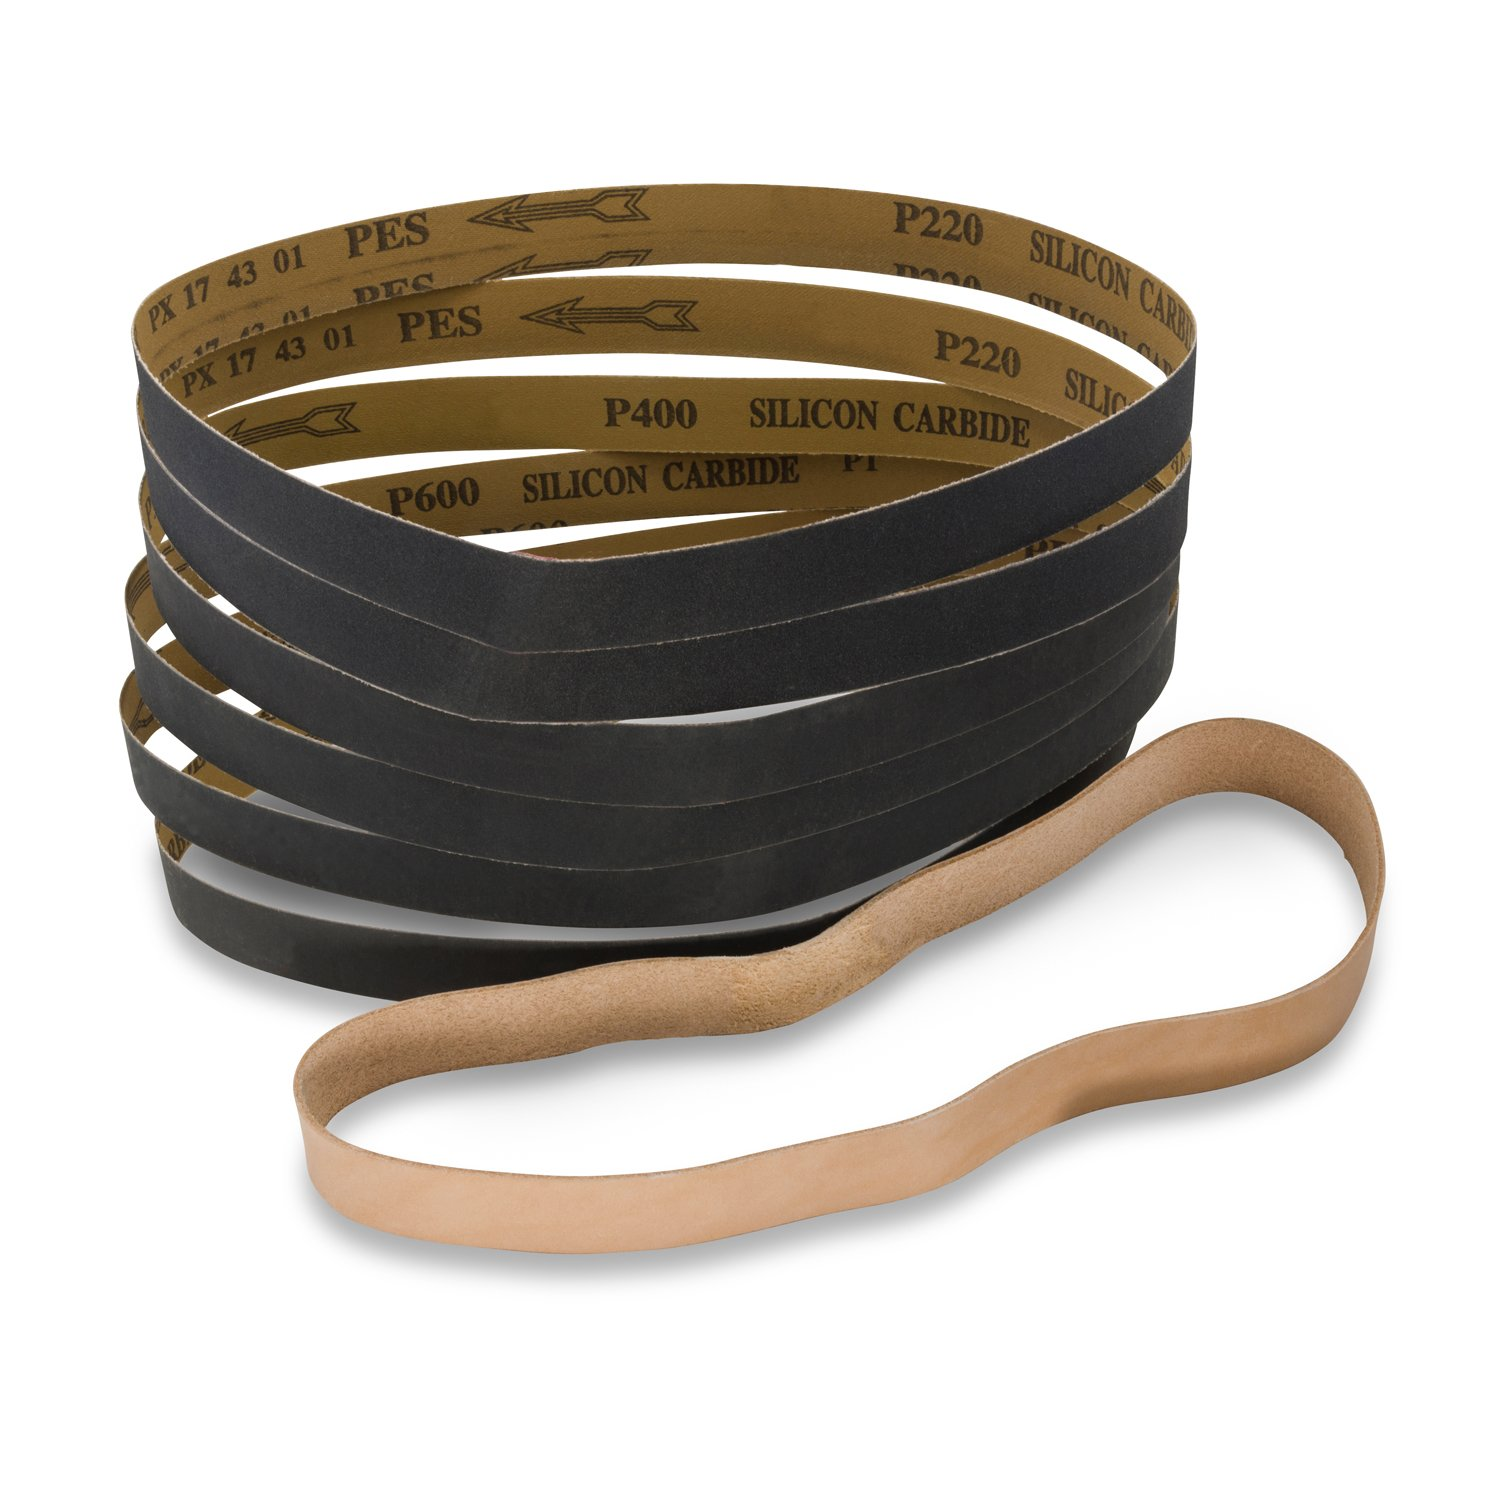 1 X 30 Inch Silicon Carbide Sanding Belts - 180, 220, 320, 400, 600, 800 Grit - 12 Pack Assortment with Leather Strop Belt by Red Label Abrasives